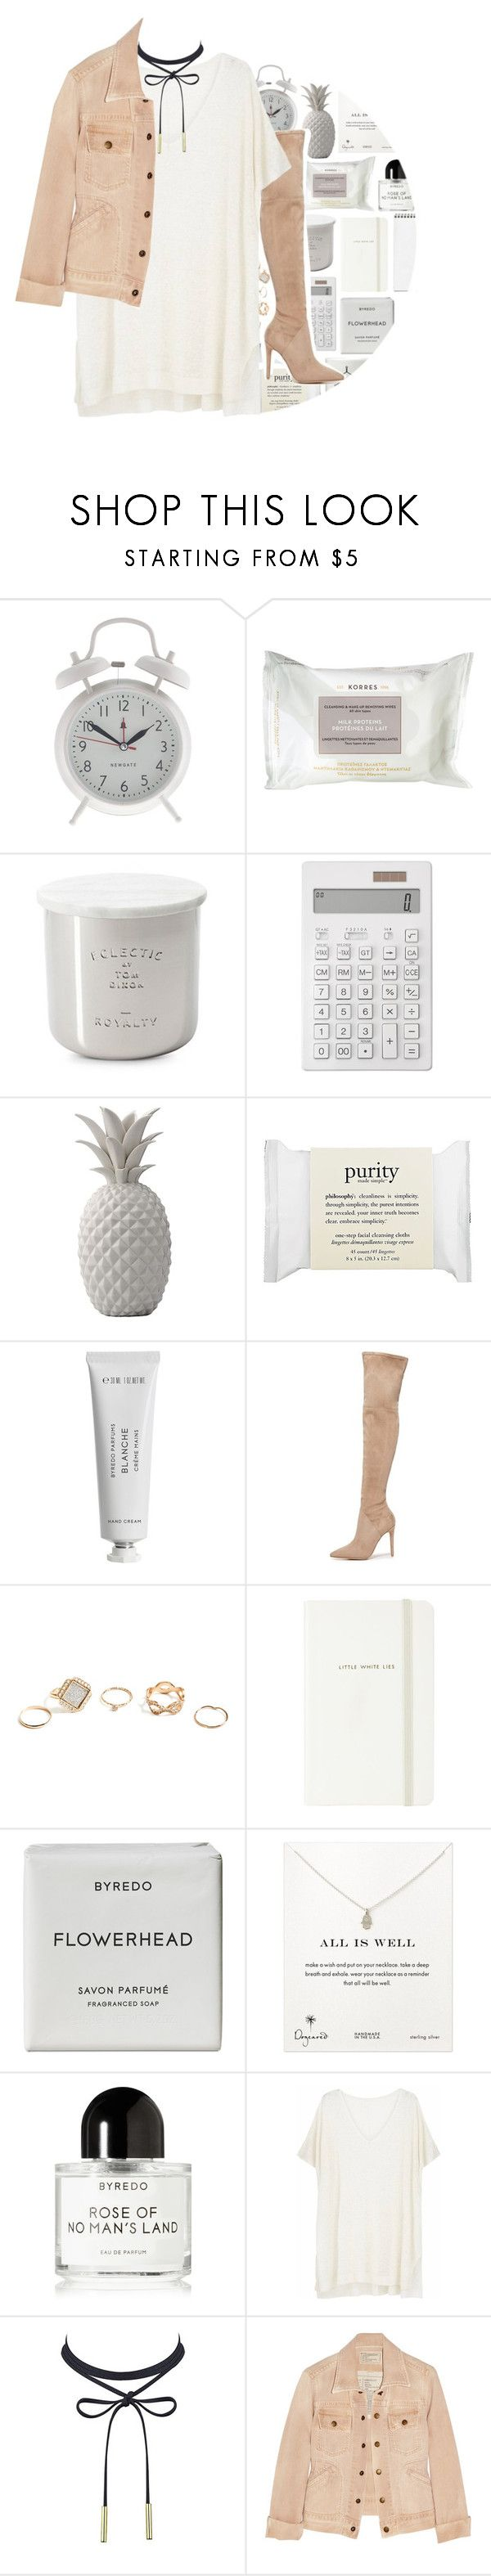 """""""6.7.17 // 60 Second Style: Instagram"""" by maevekaterina ❤ liked on Polyvore featuring J.Crew, Korres, Tom Dixon, Muji, Bloomingville, philosophy, Byredo, Kendall + Kylie, GUESS and Kate Spade"""